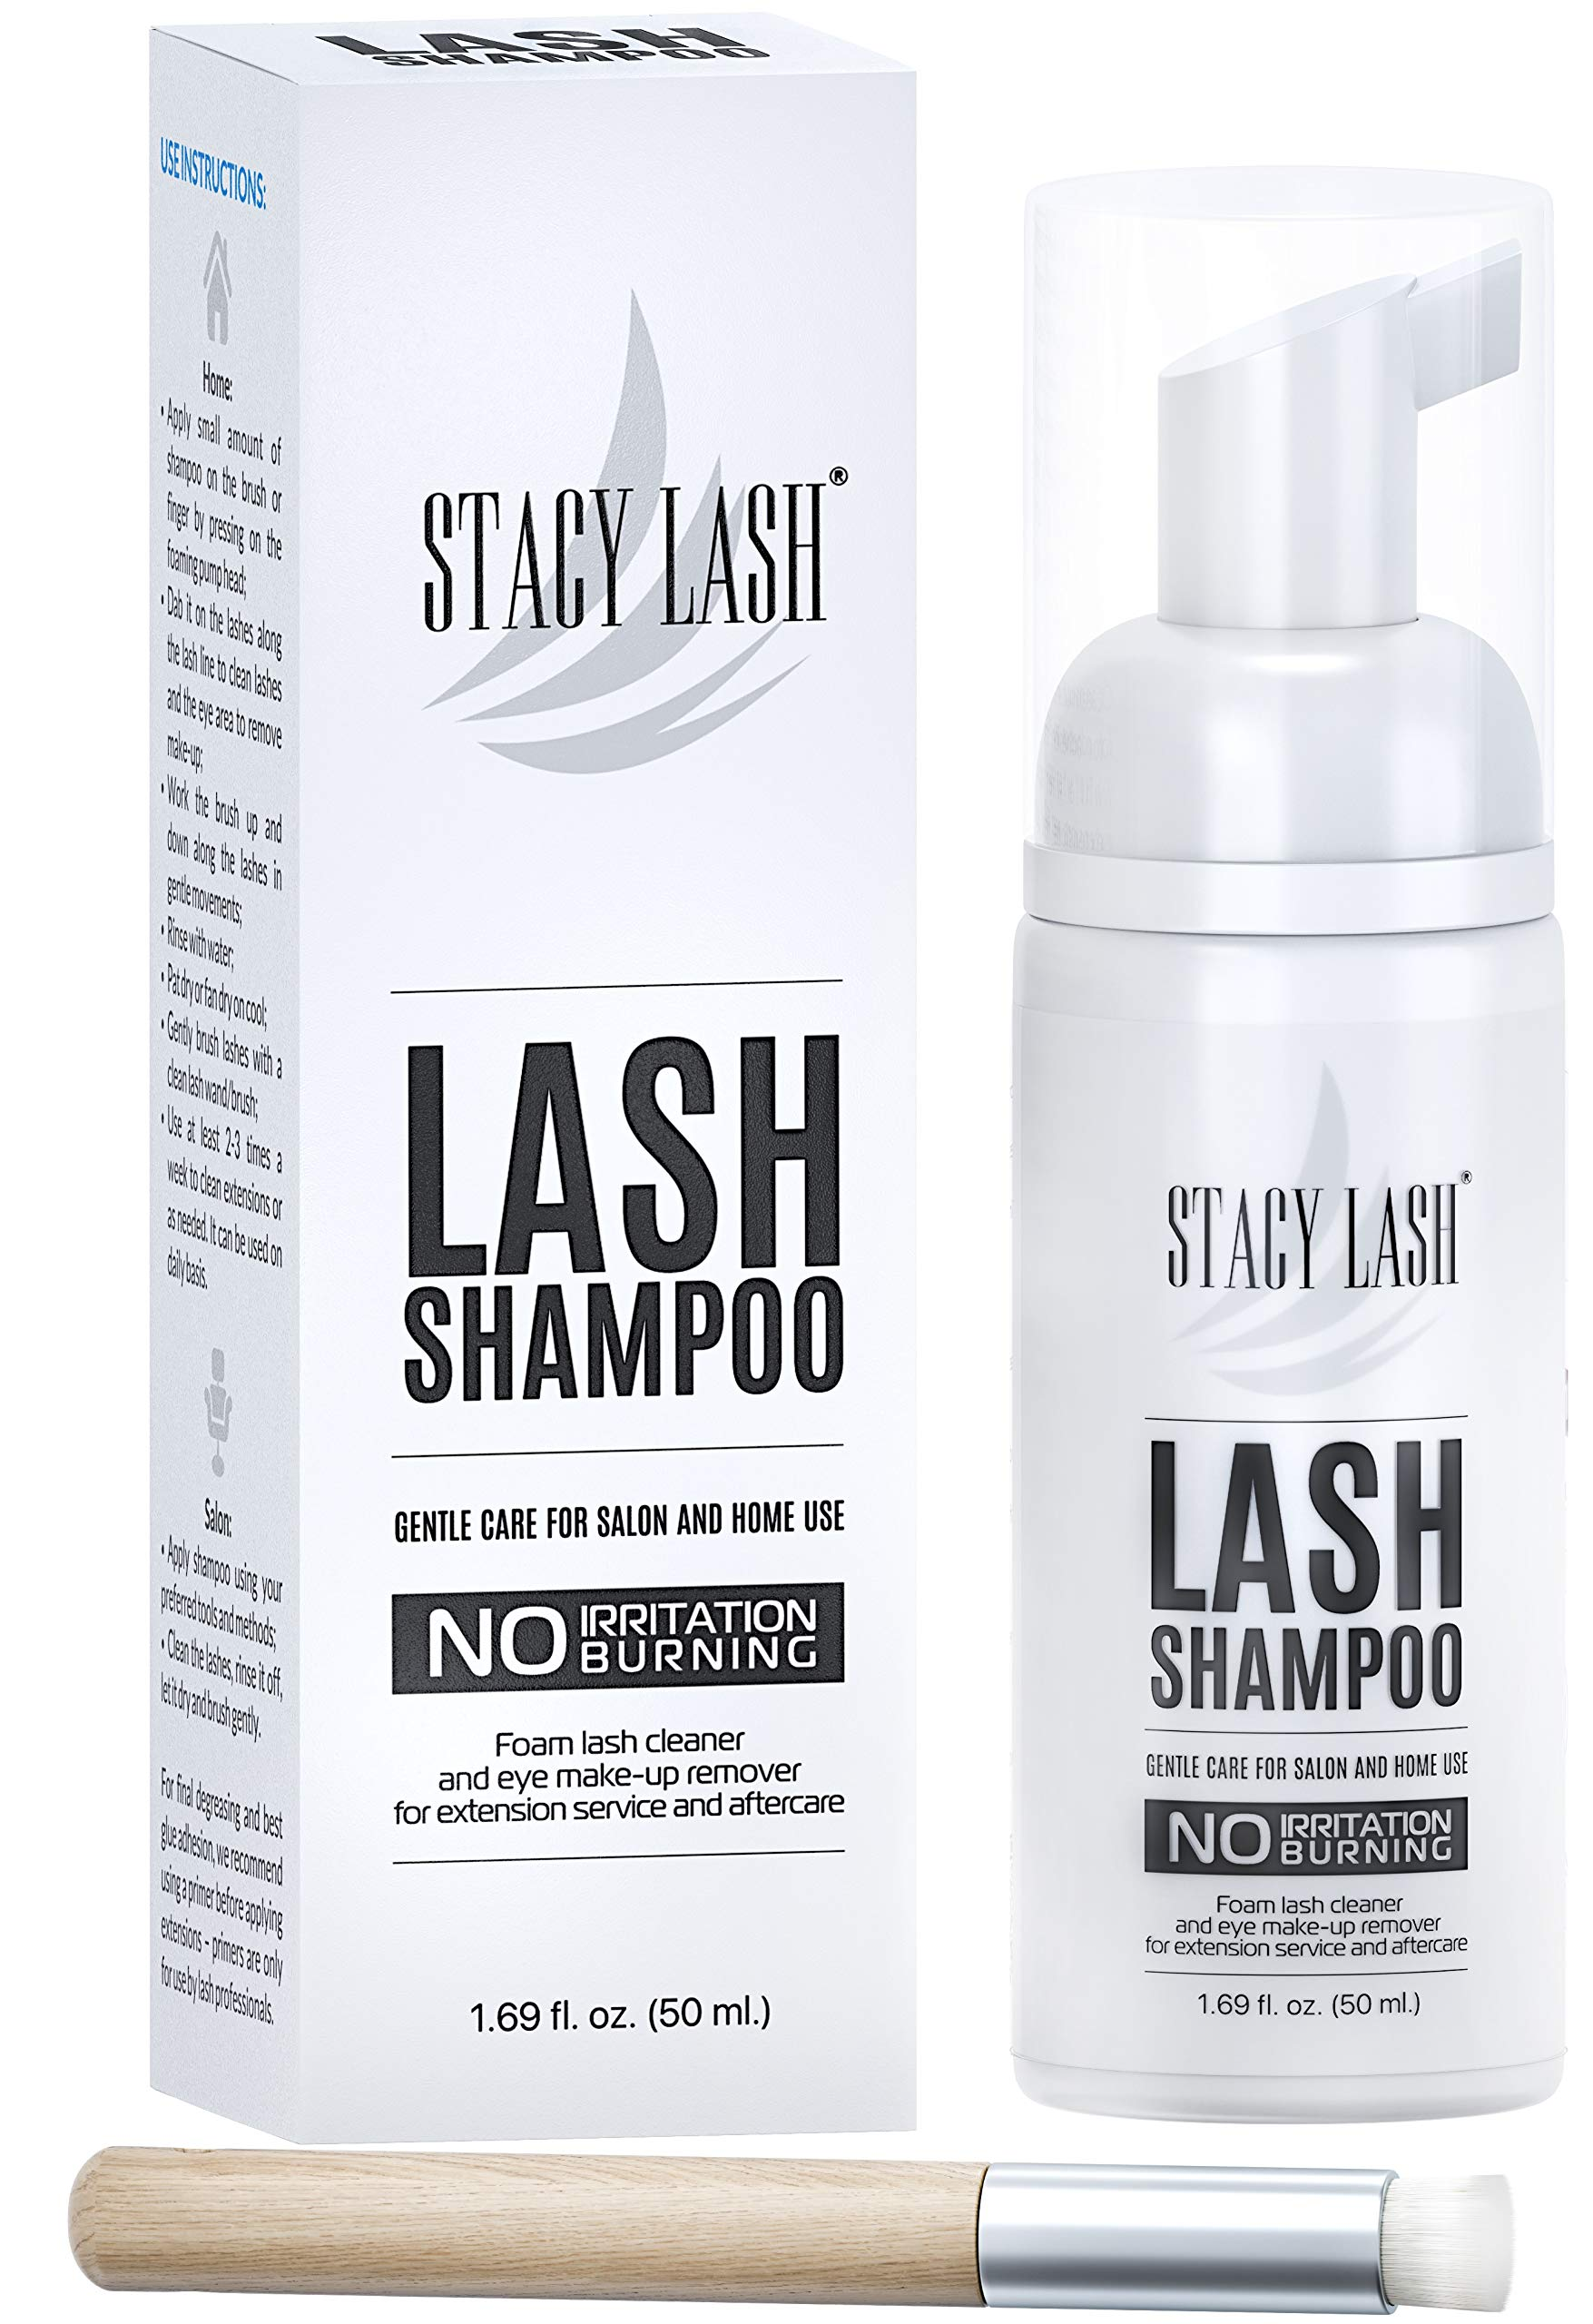 Eyelash Extension Shampoo Stacy Lash + Brush / 50ml / Eyelid Foaming Cleanser/Wash for Extensions and Natural Lashes/Paraben & Sulfate Free Safe Makeup & Mascara Remover/Professional & Self Use by Stacy Lash